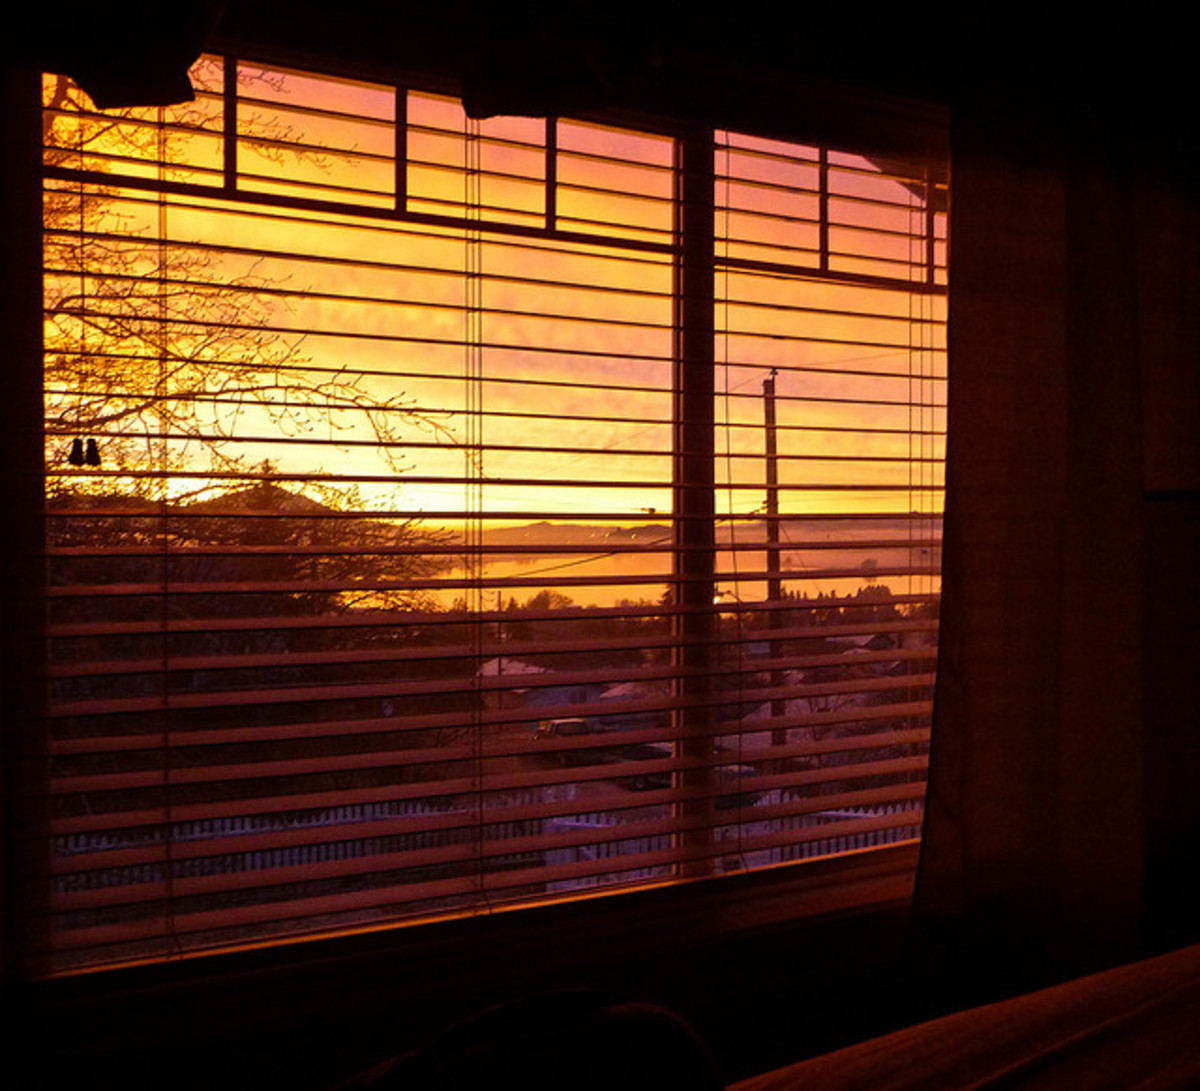 Time to close the blinds.. or is it?